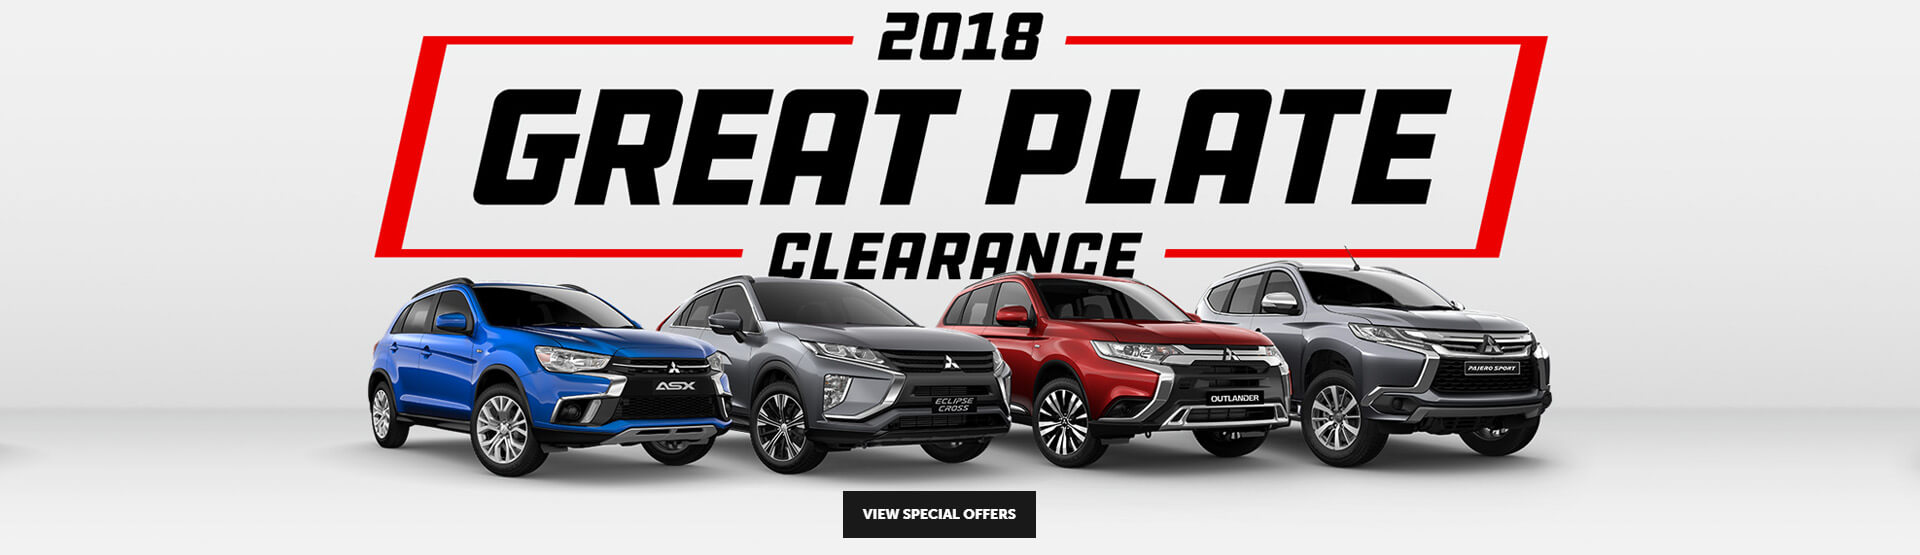 Mitsubishi 2018 Great Plate Clearance campaign banner